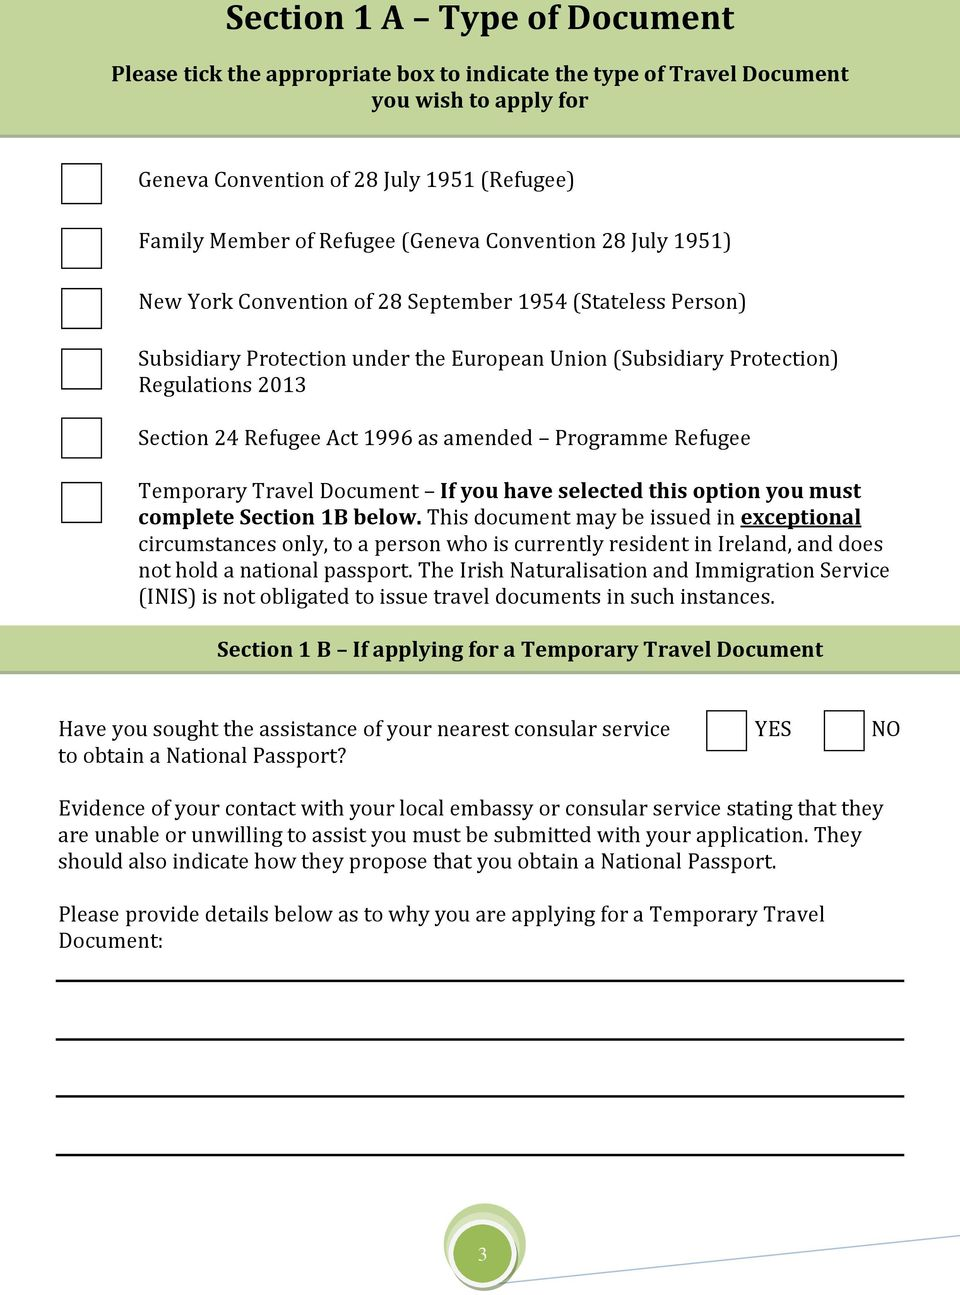 1996 as amended Programme Refugee Temporary Travel Document If you have selected this option you must complete Section 1B below.